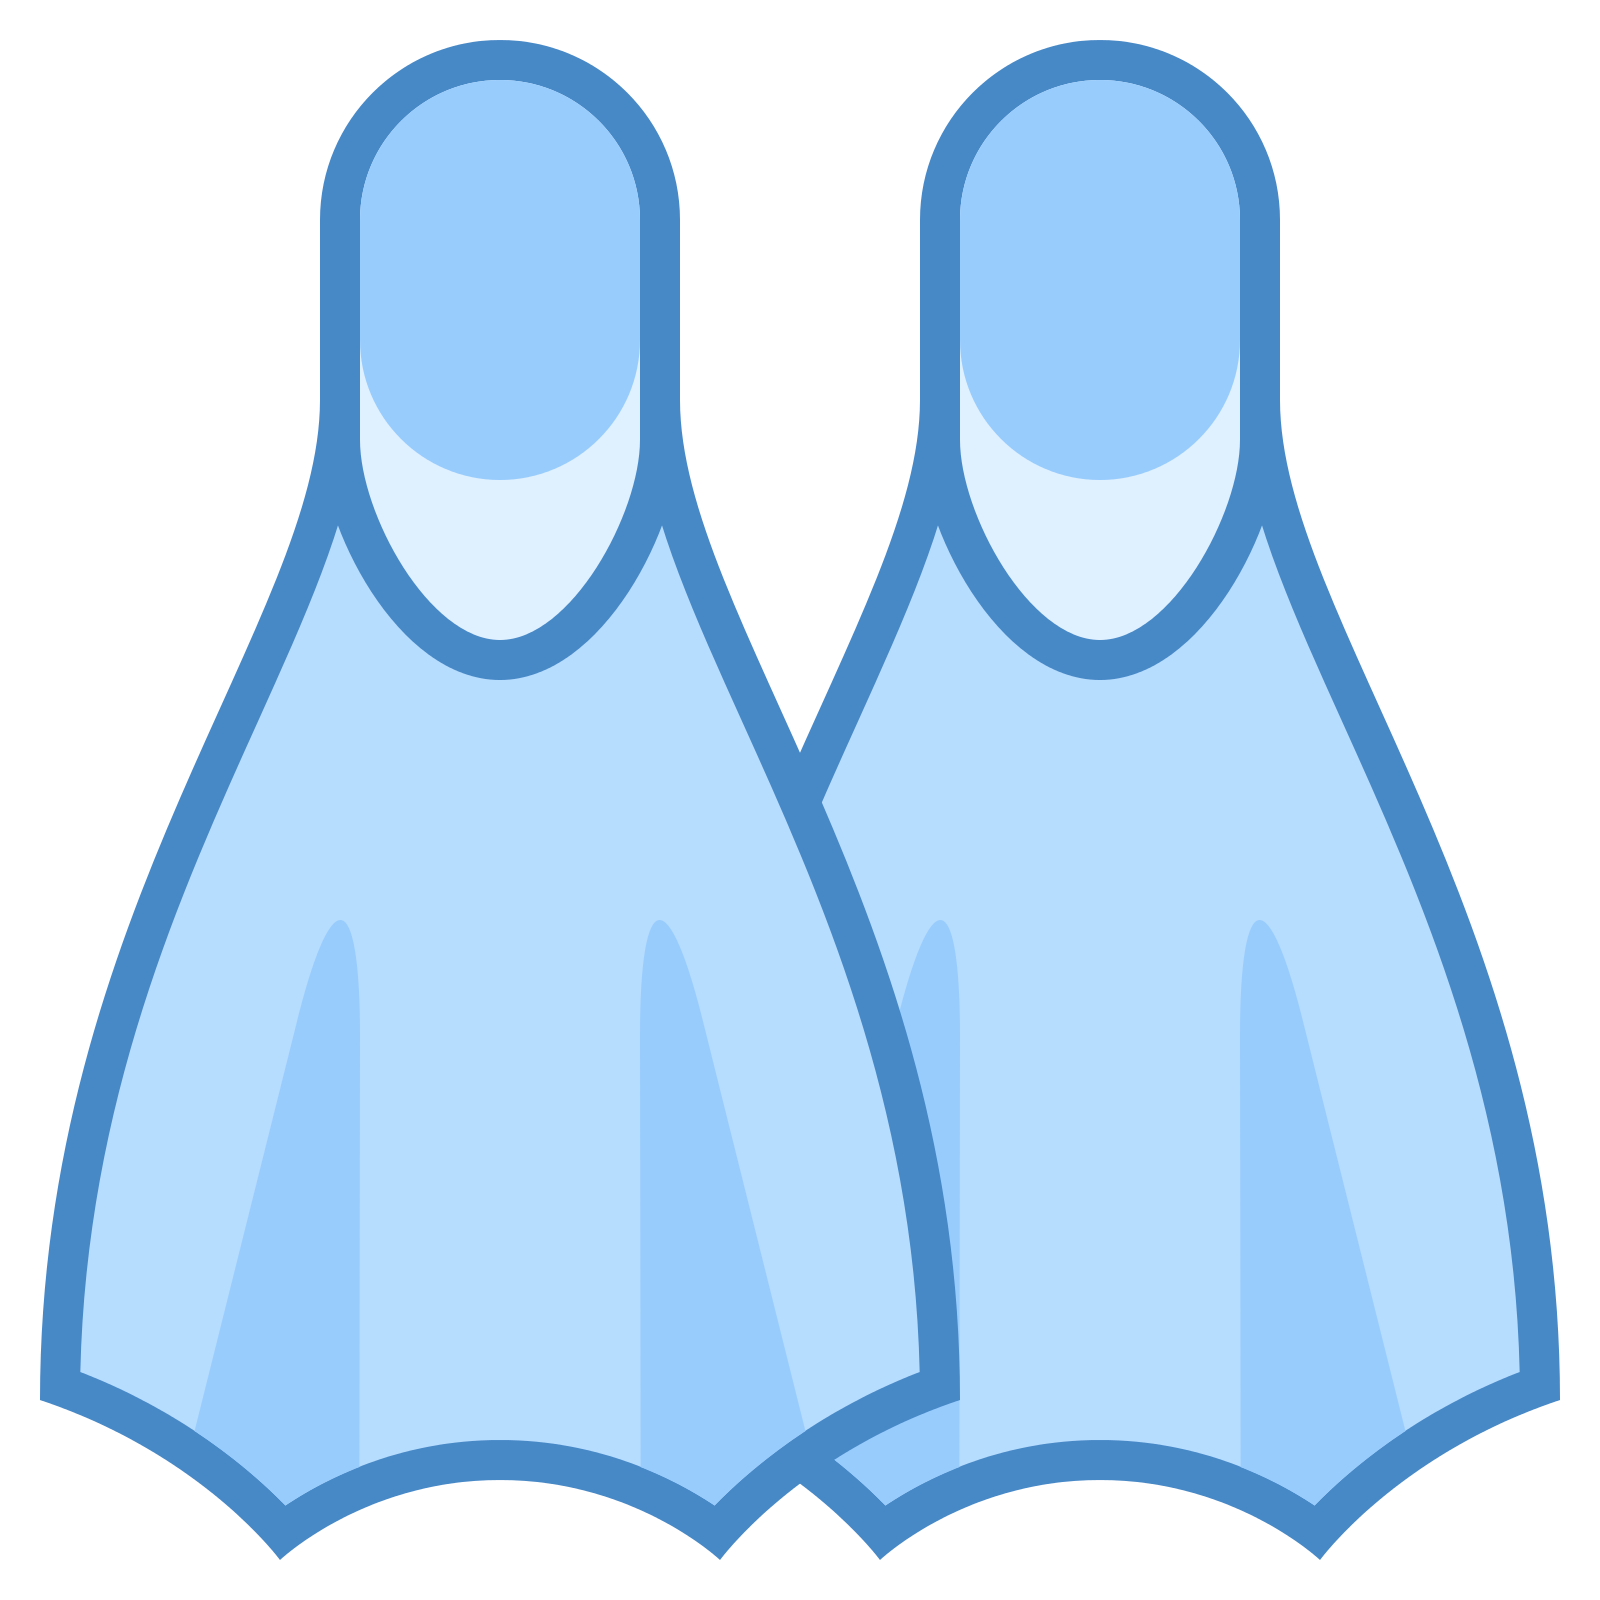 Swimming transparent 24 foot. Flippers png image purepng